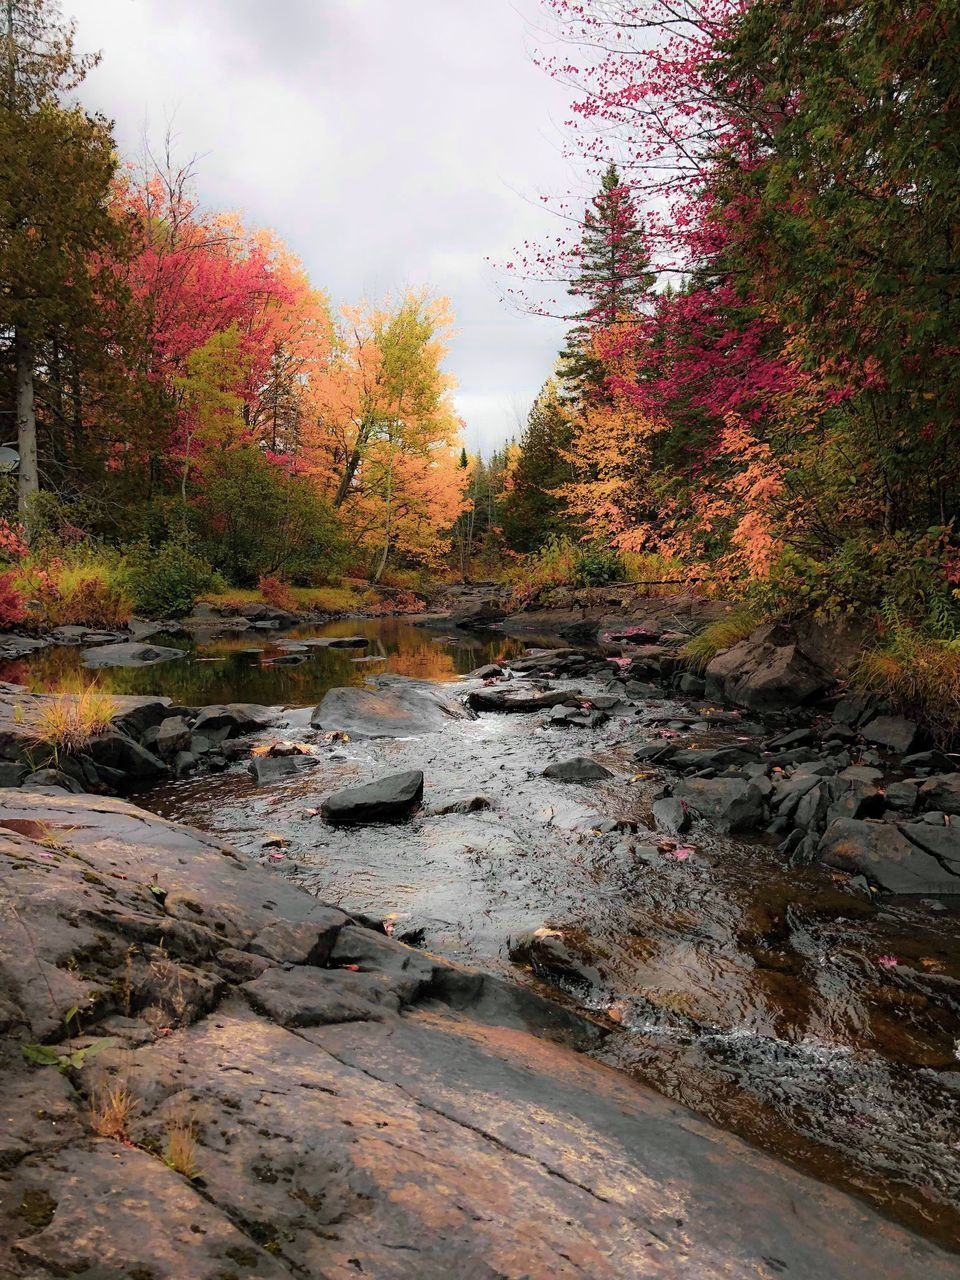 SCENIC VIEW OF STREAM IN FOREST AGAINST SKY DURING AUTUMN